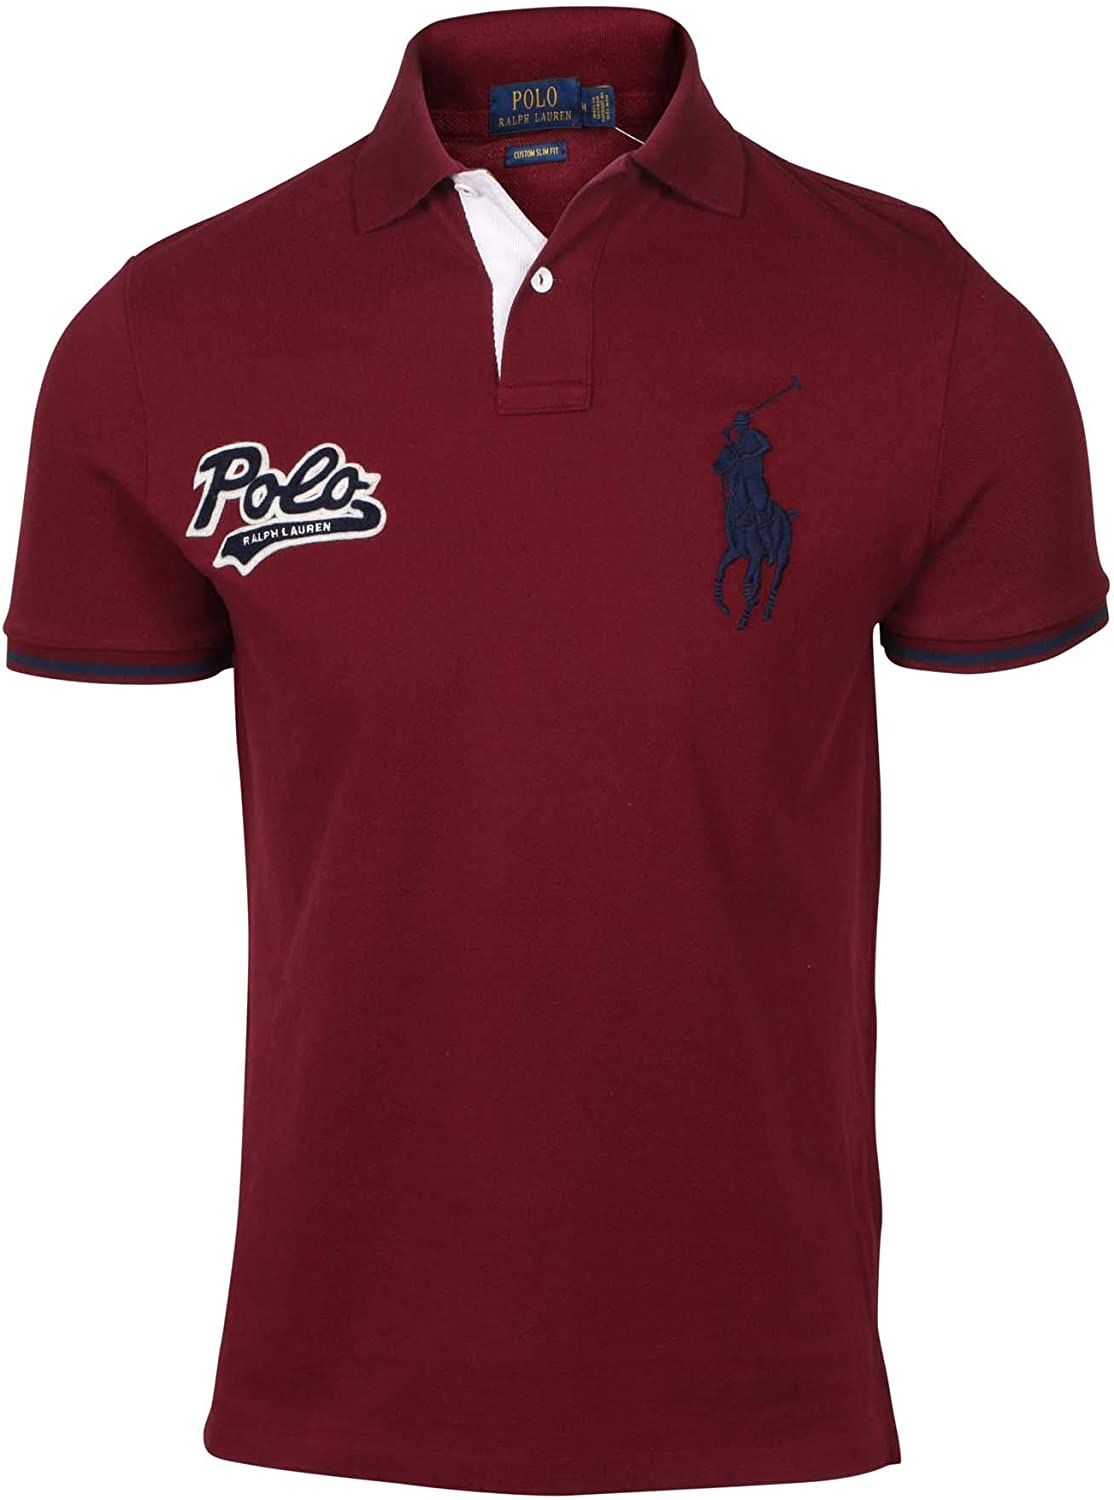 Polo Ralph Lauren Mens Custom Slim Fit Big Pony Polo Shirt (M, Red)